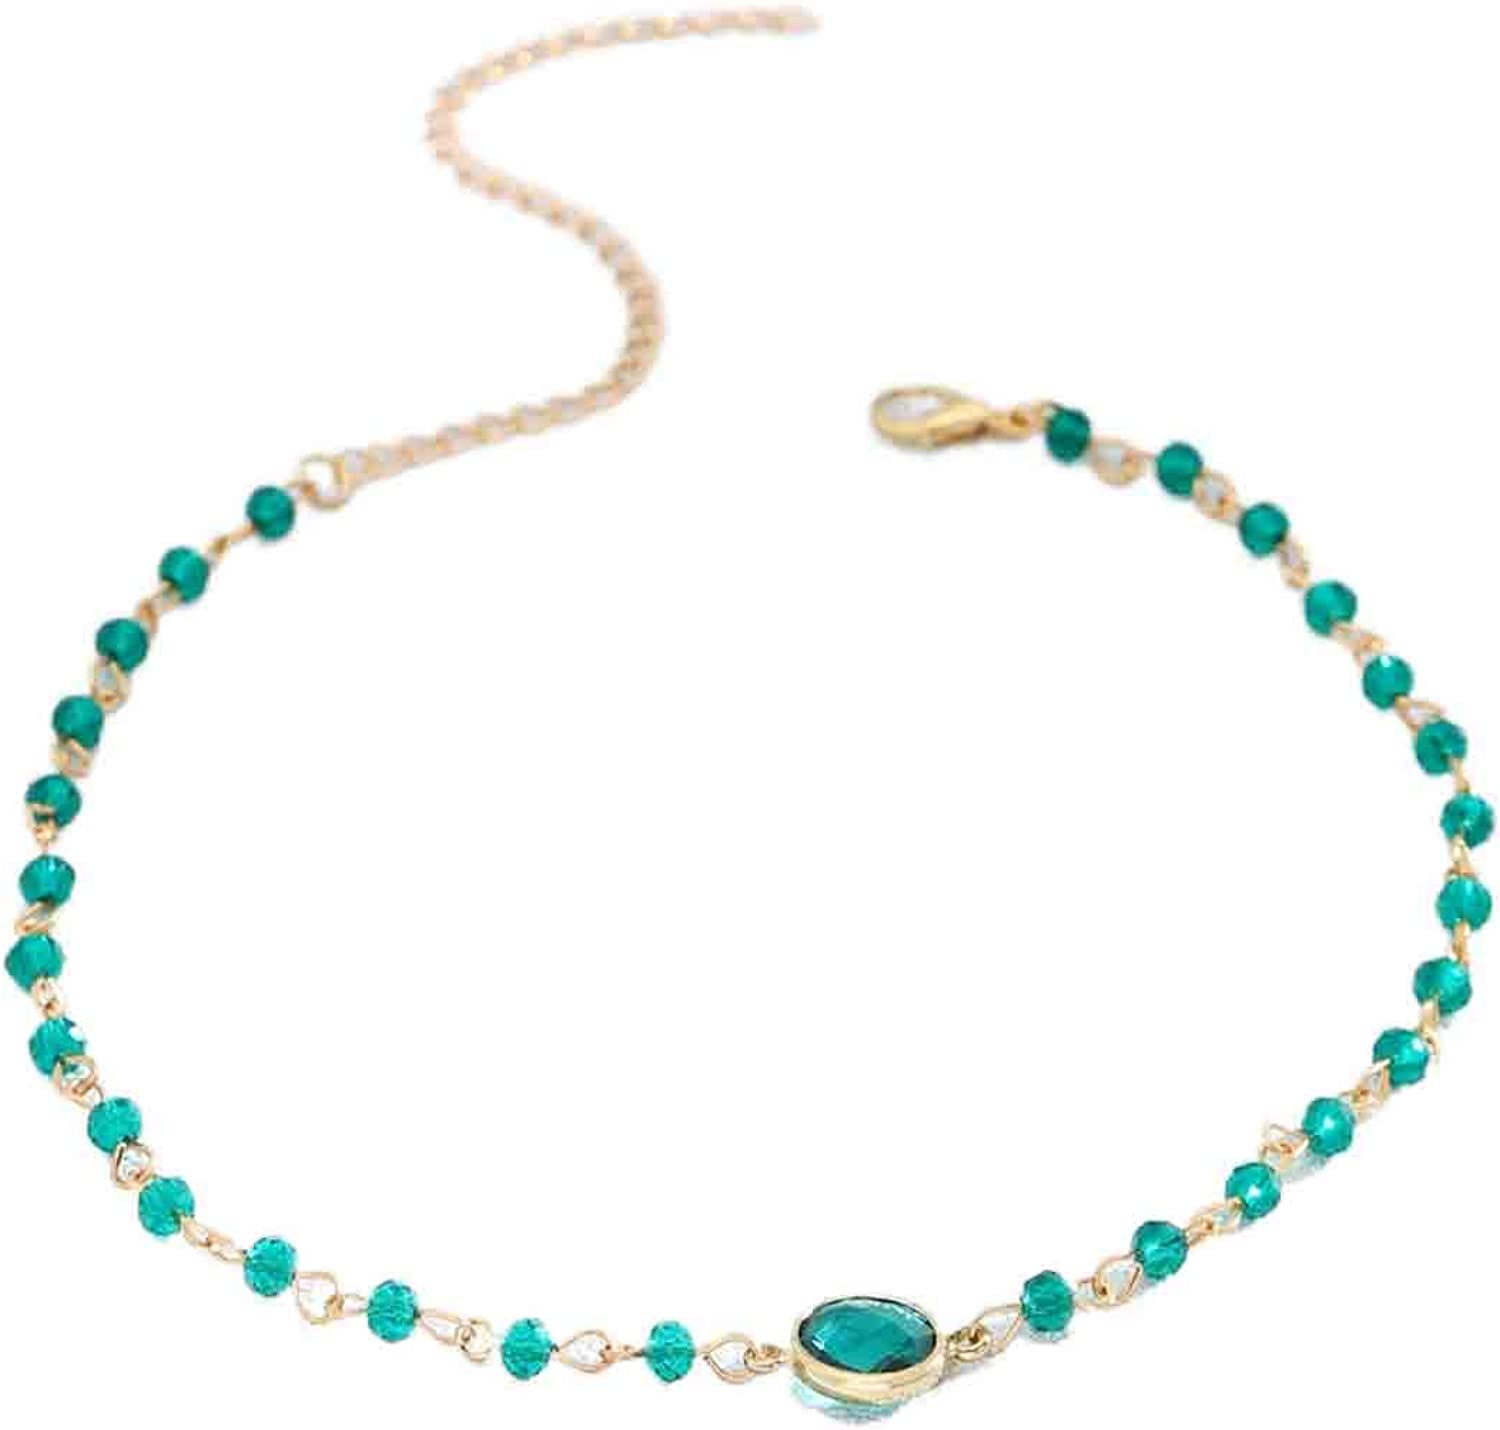 Olbye Rainbow Moonstone Necklace Choker Simple Necklace Personalize Everyday Necklace Jewelry for Women and Girls